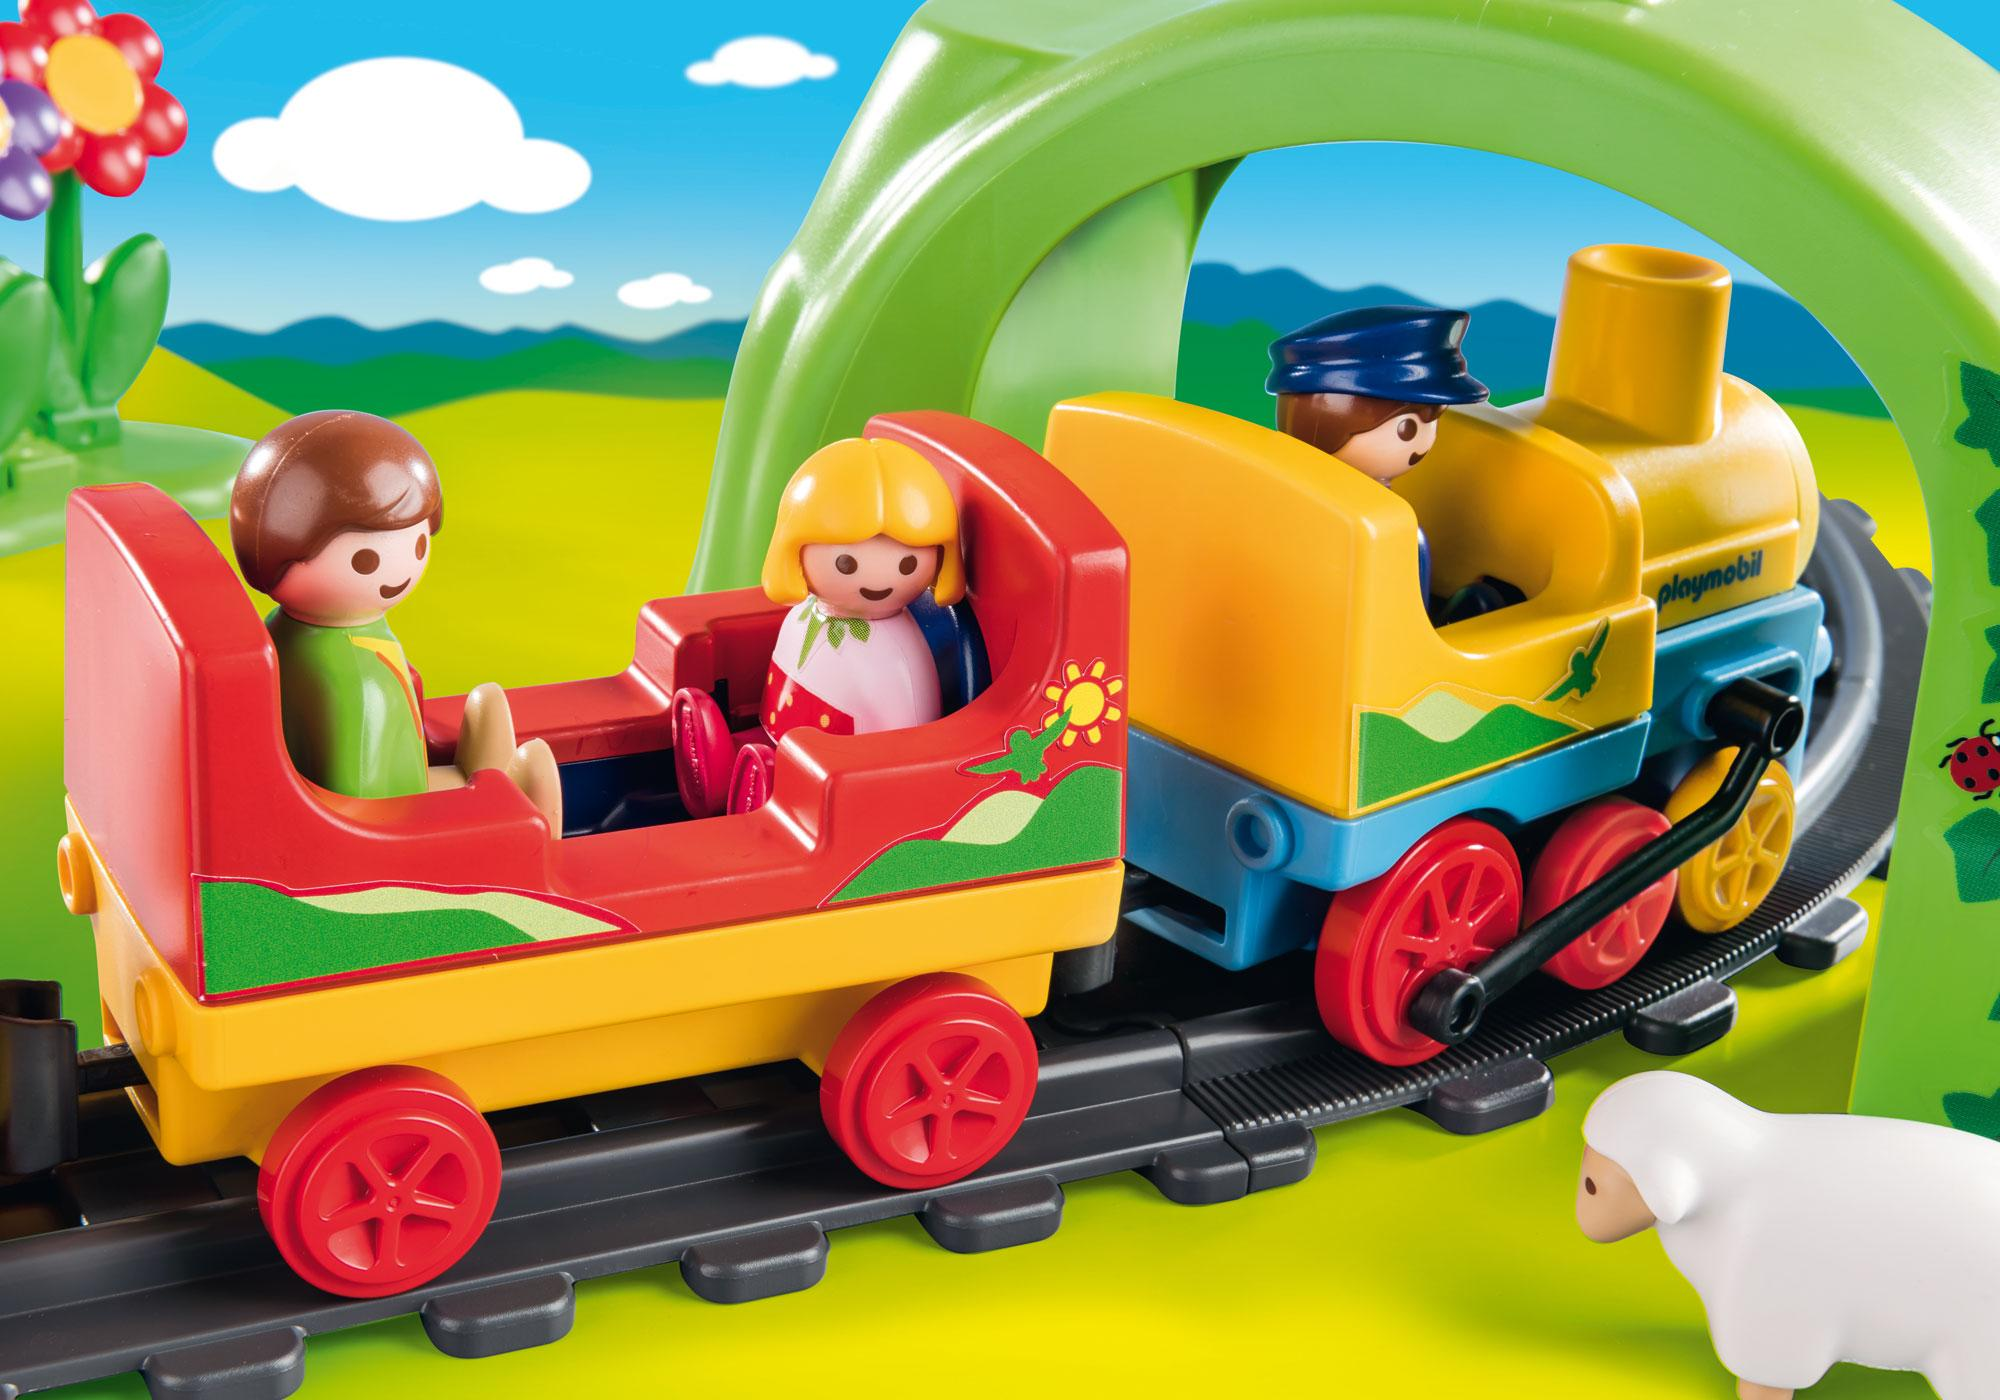 http://media.playmobil.com/i/playmobil/70179_product_extra1/My first train set